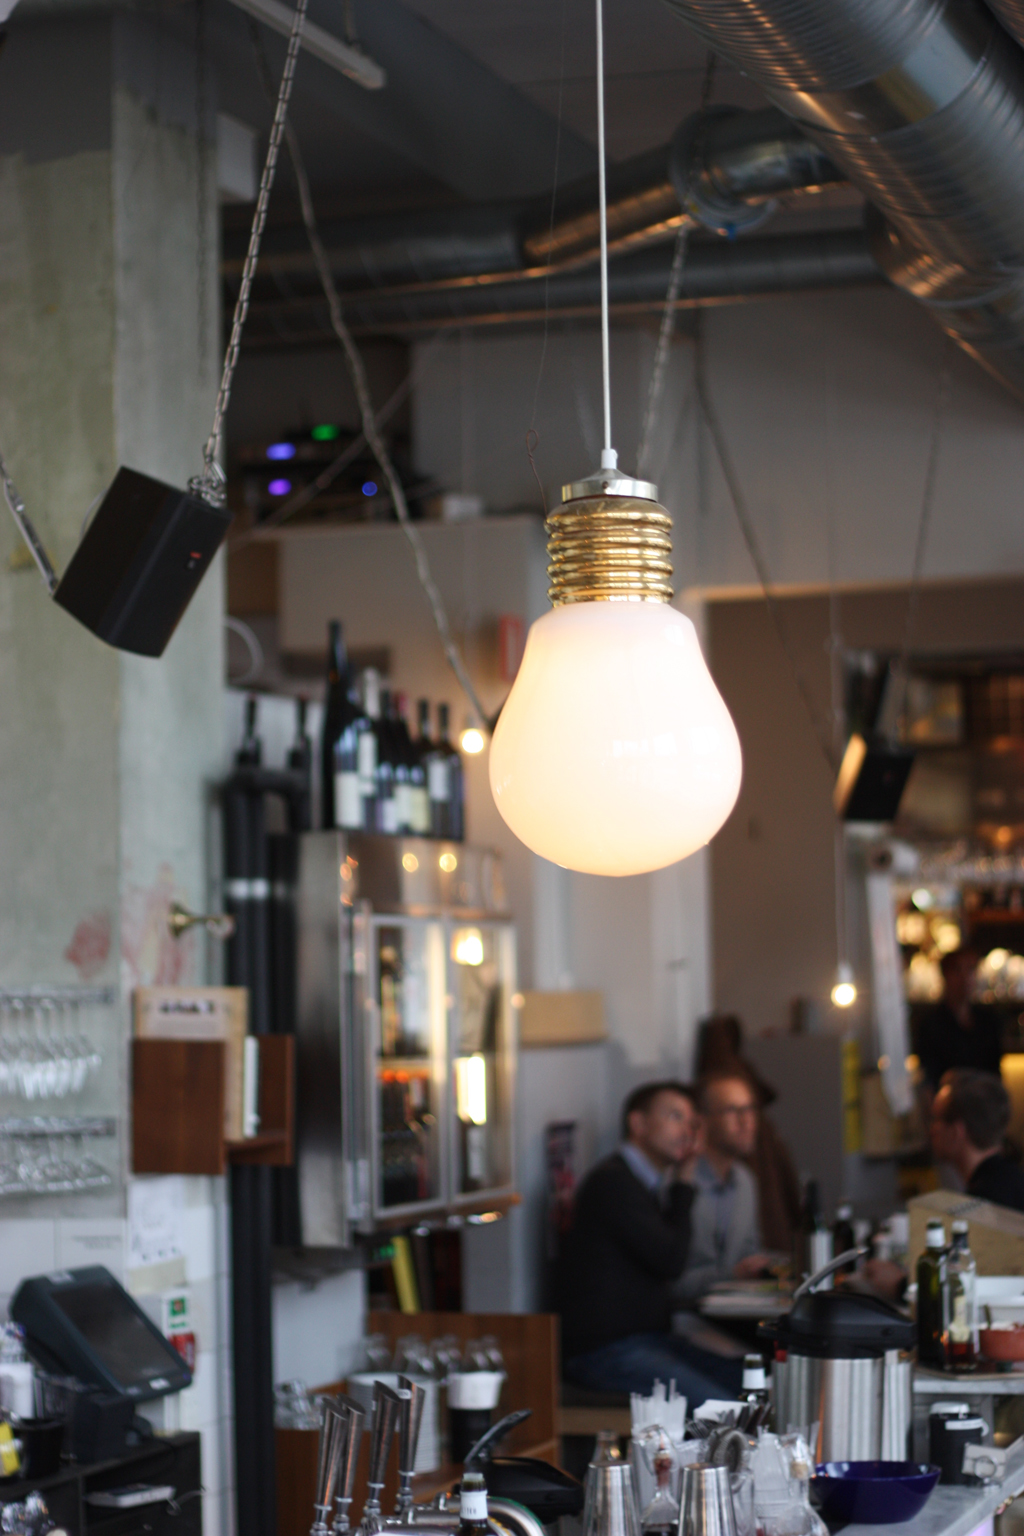 Lamp at Urban Deli